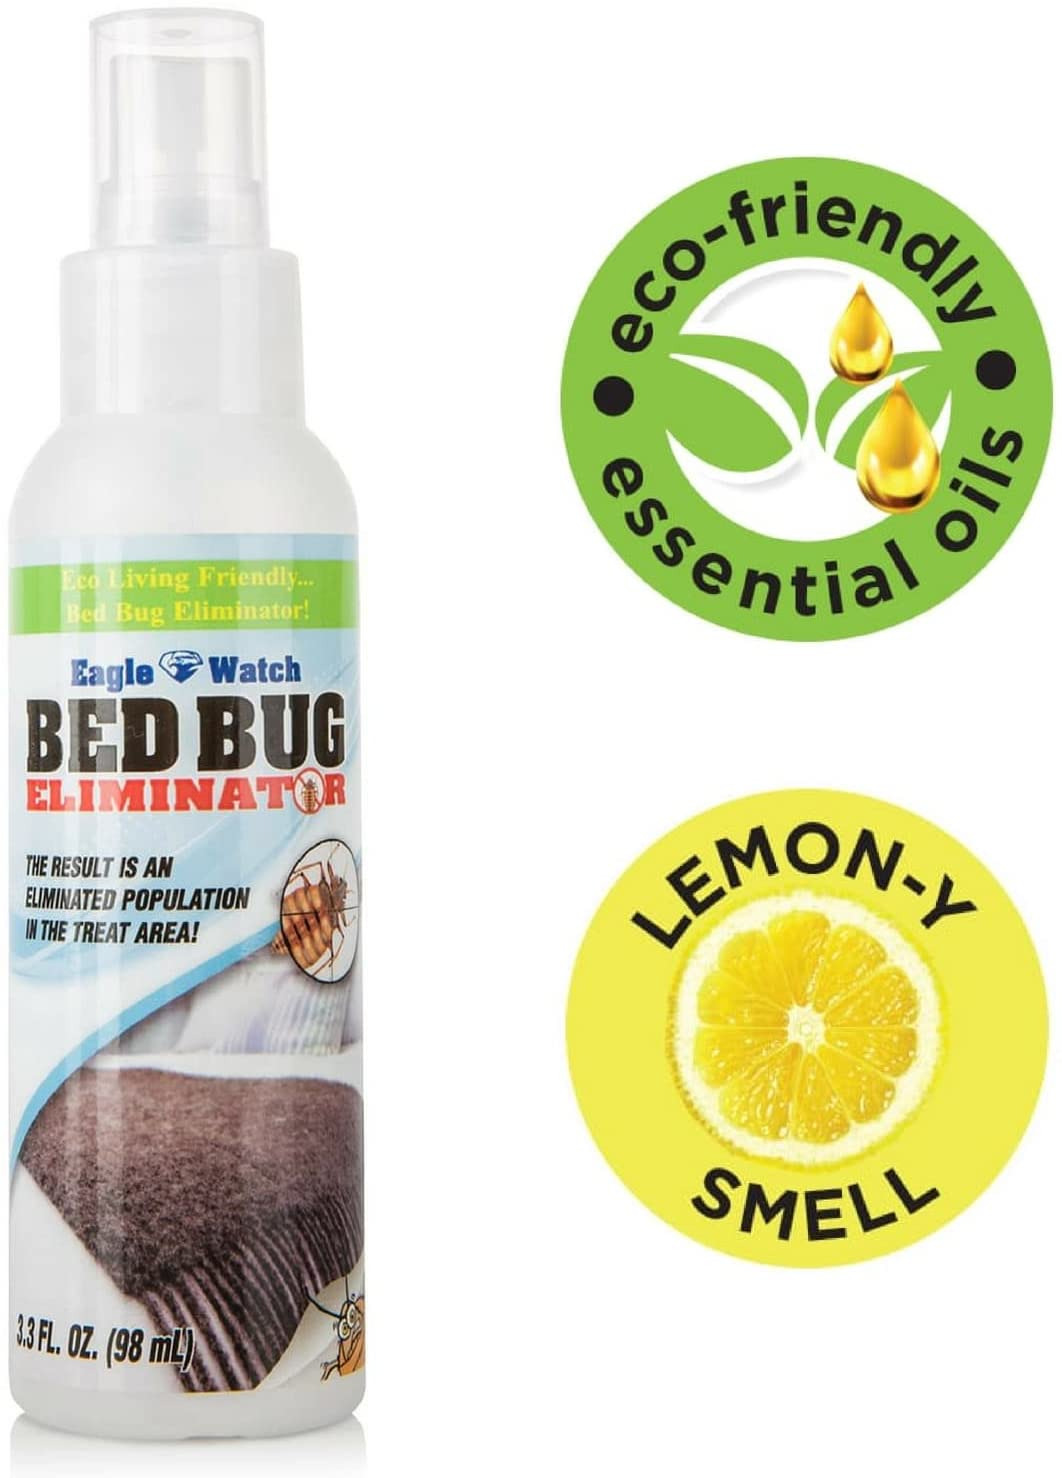 Ortho Bed Bug Spray Review Elegant Eco Friendly Bed Bug Spray Non toxic Bed Bug Killer & Barrier Essential Oil formula Great Bedbugs Spray for Home Mattress Clothes Travel Skin